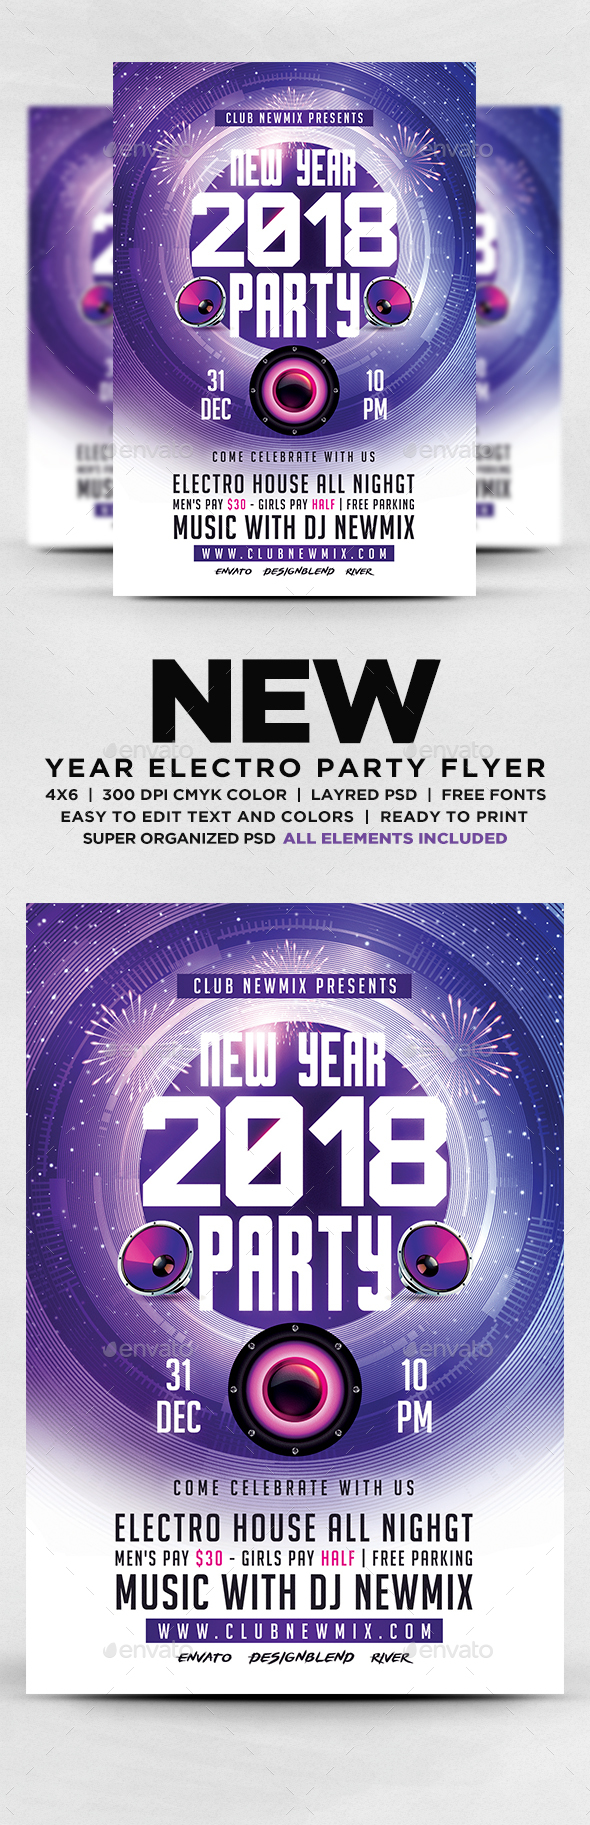 GraphicRiver New Year 2018 Electro Party Flyer 20812847